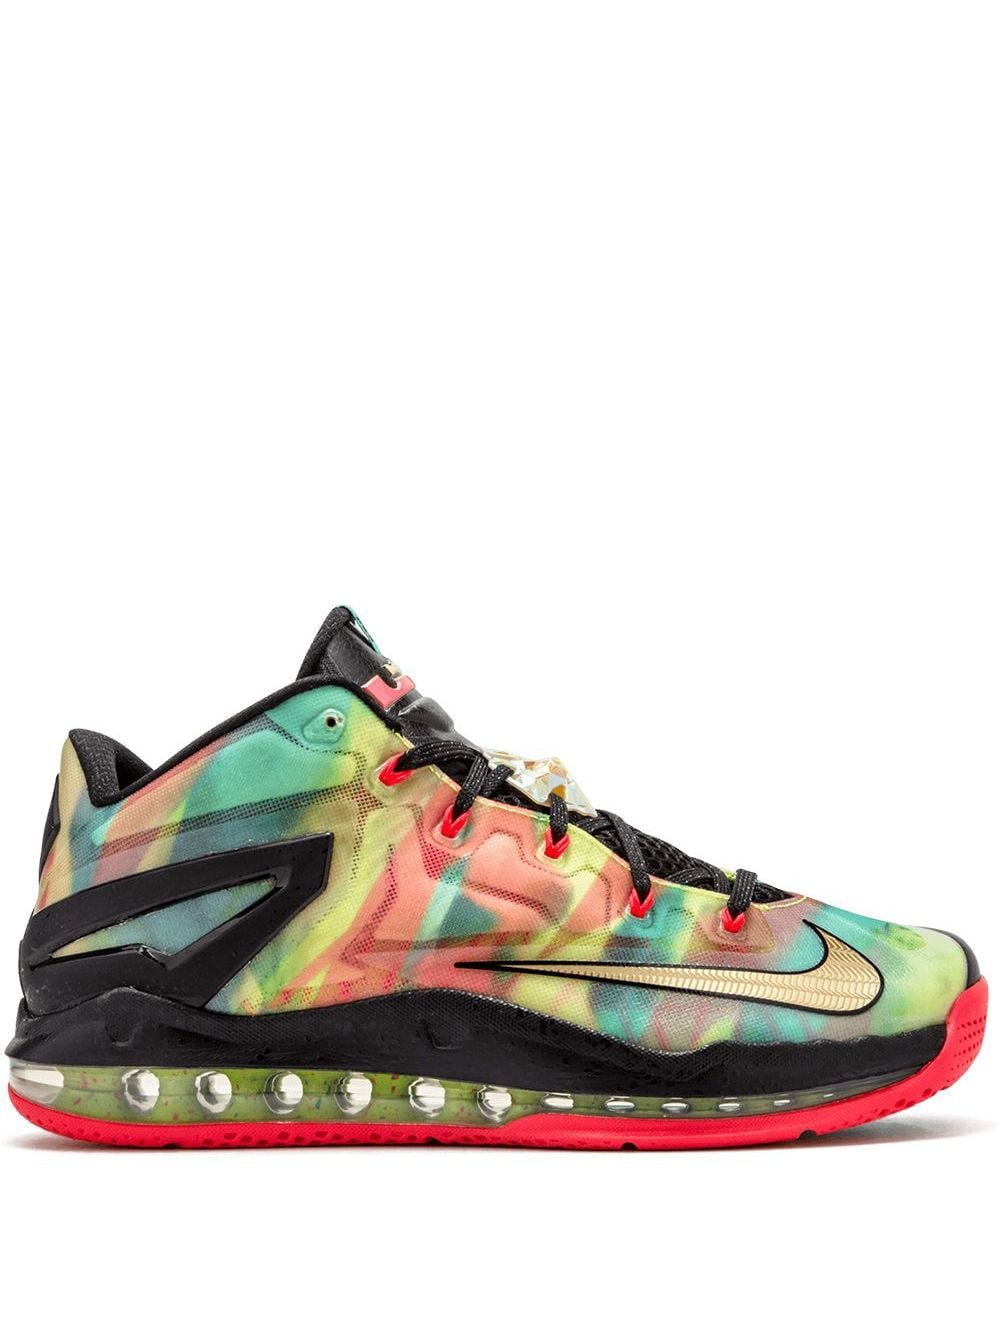 Nike Max Lebron 11 Low SE - Multi-Color/Metallic Gold von Nike